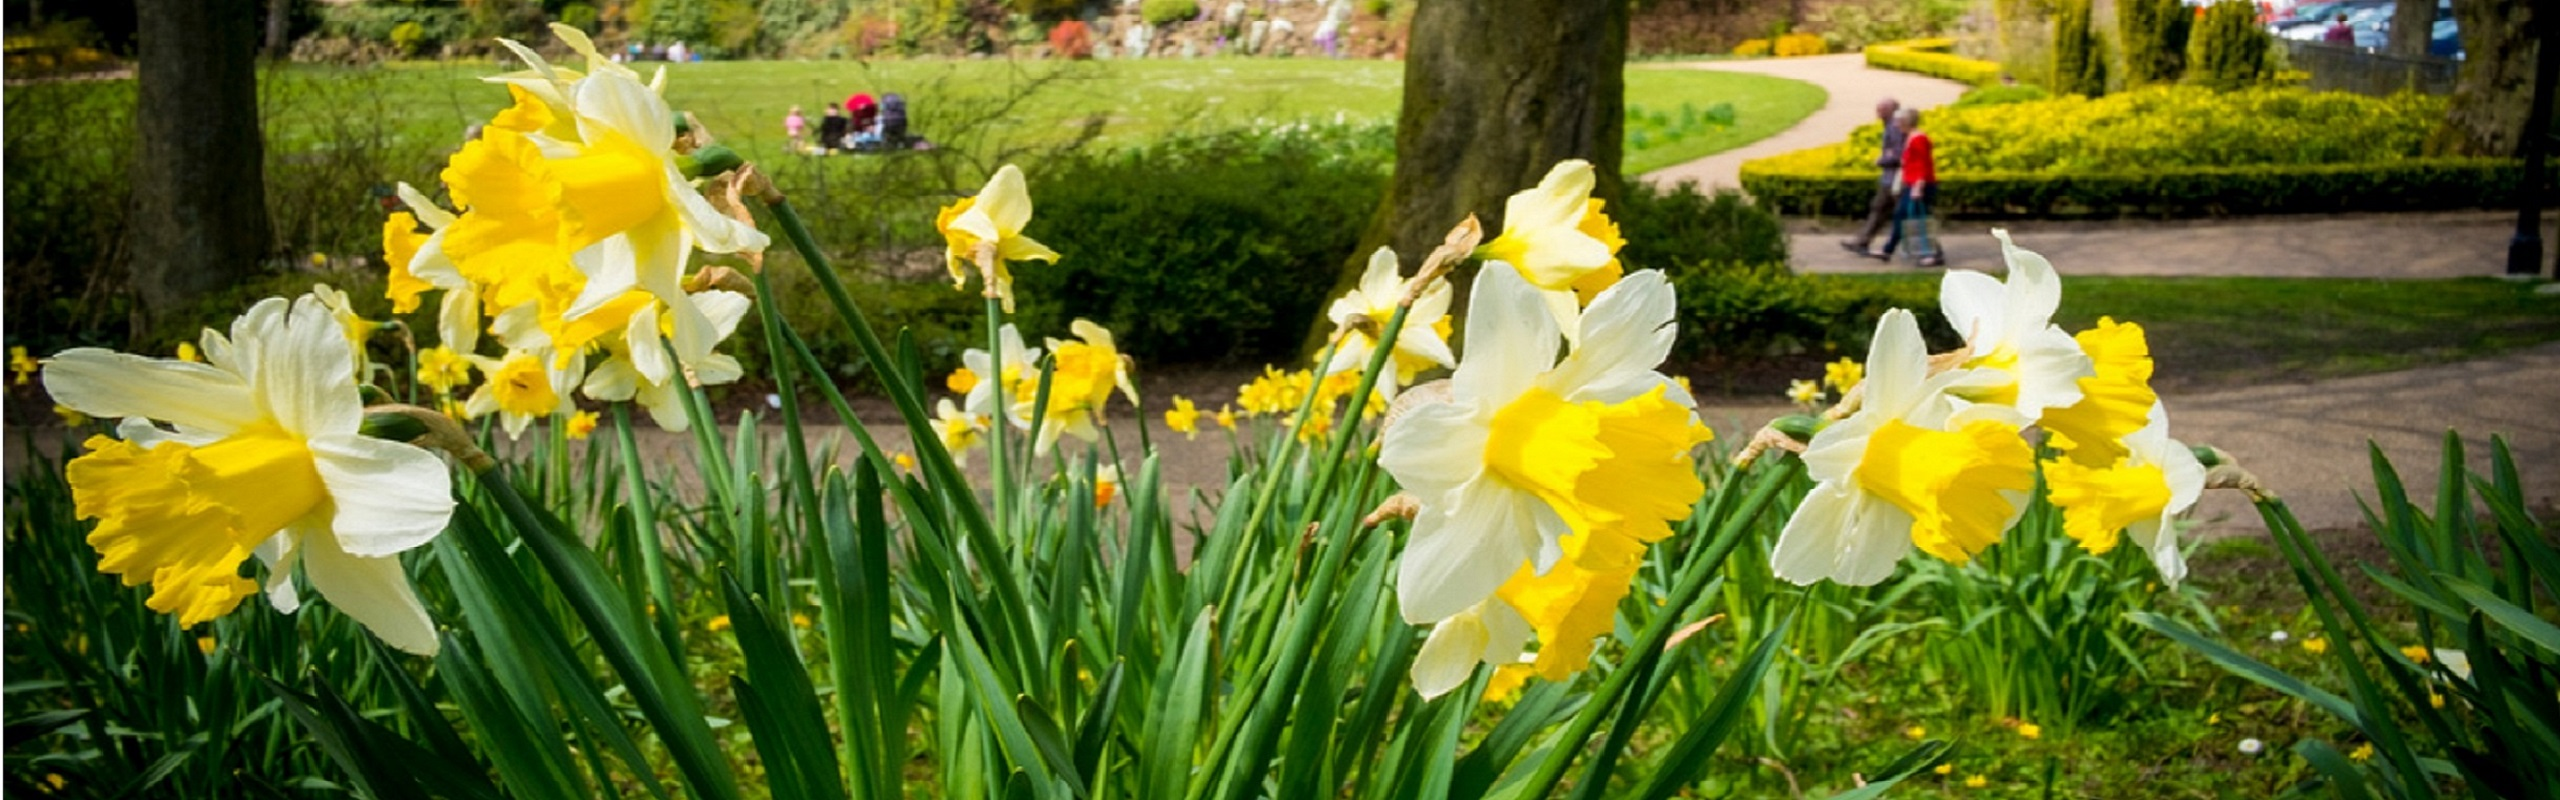 daffodils blooming in a park